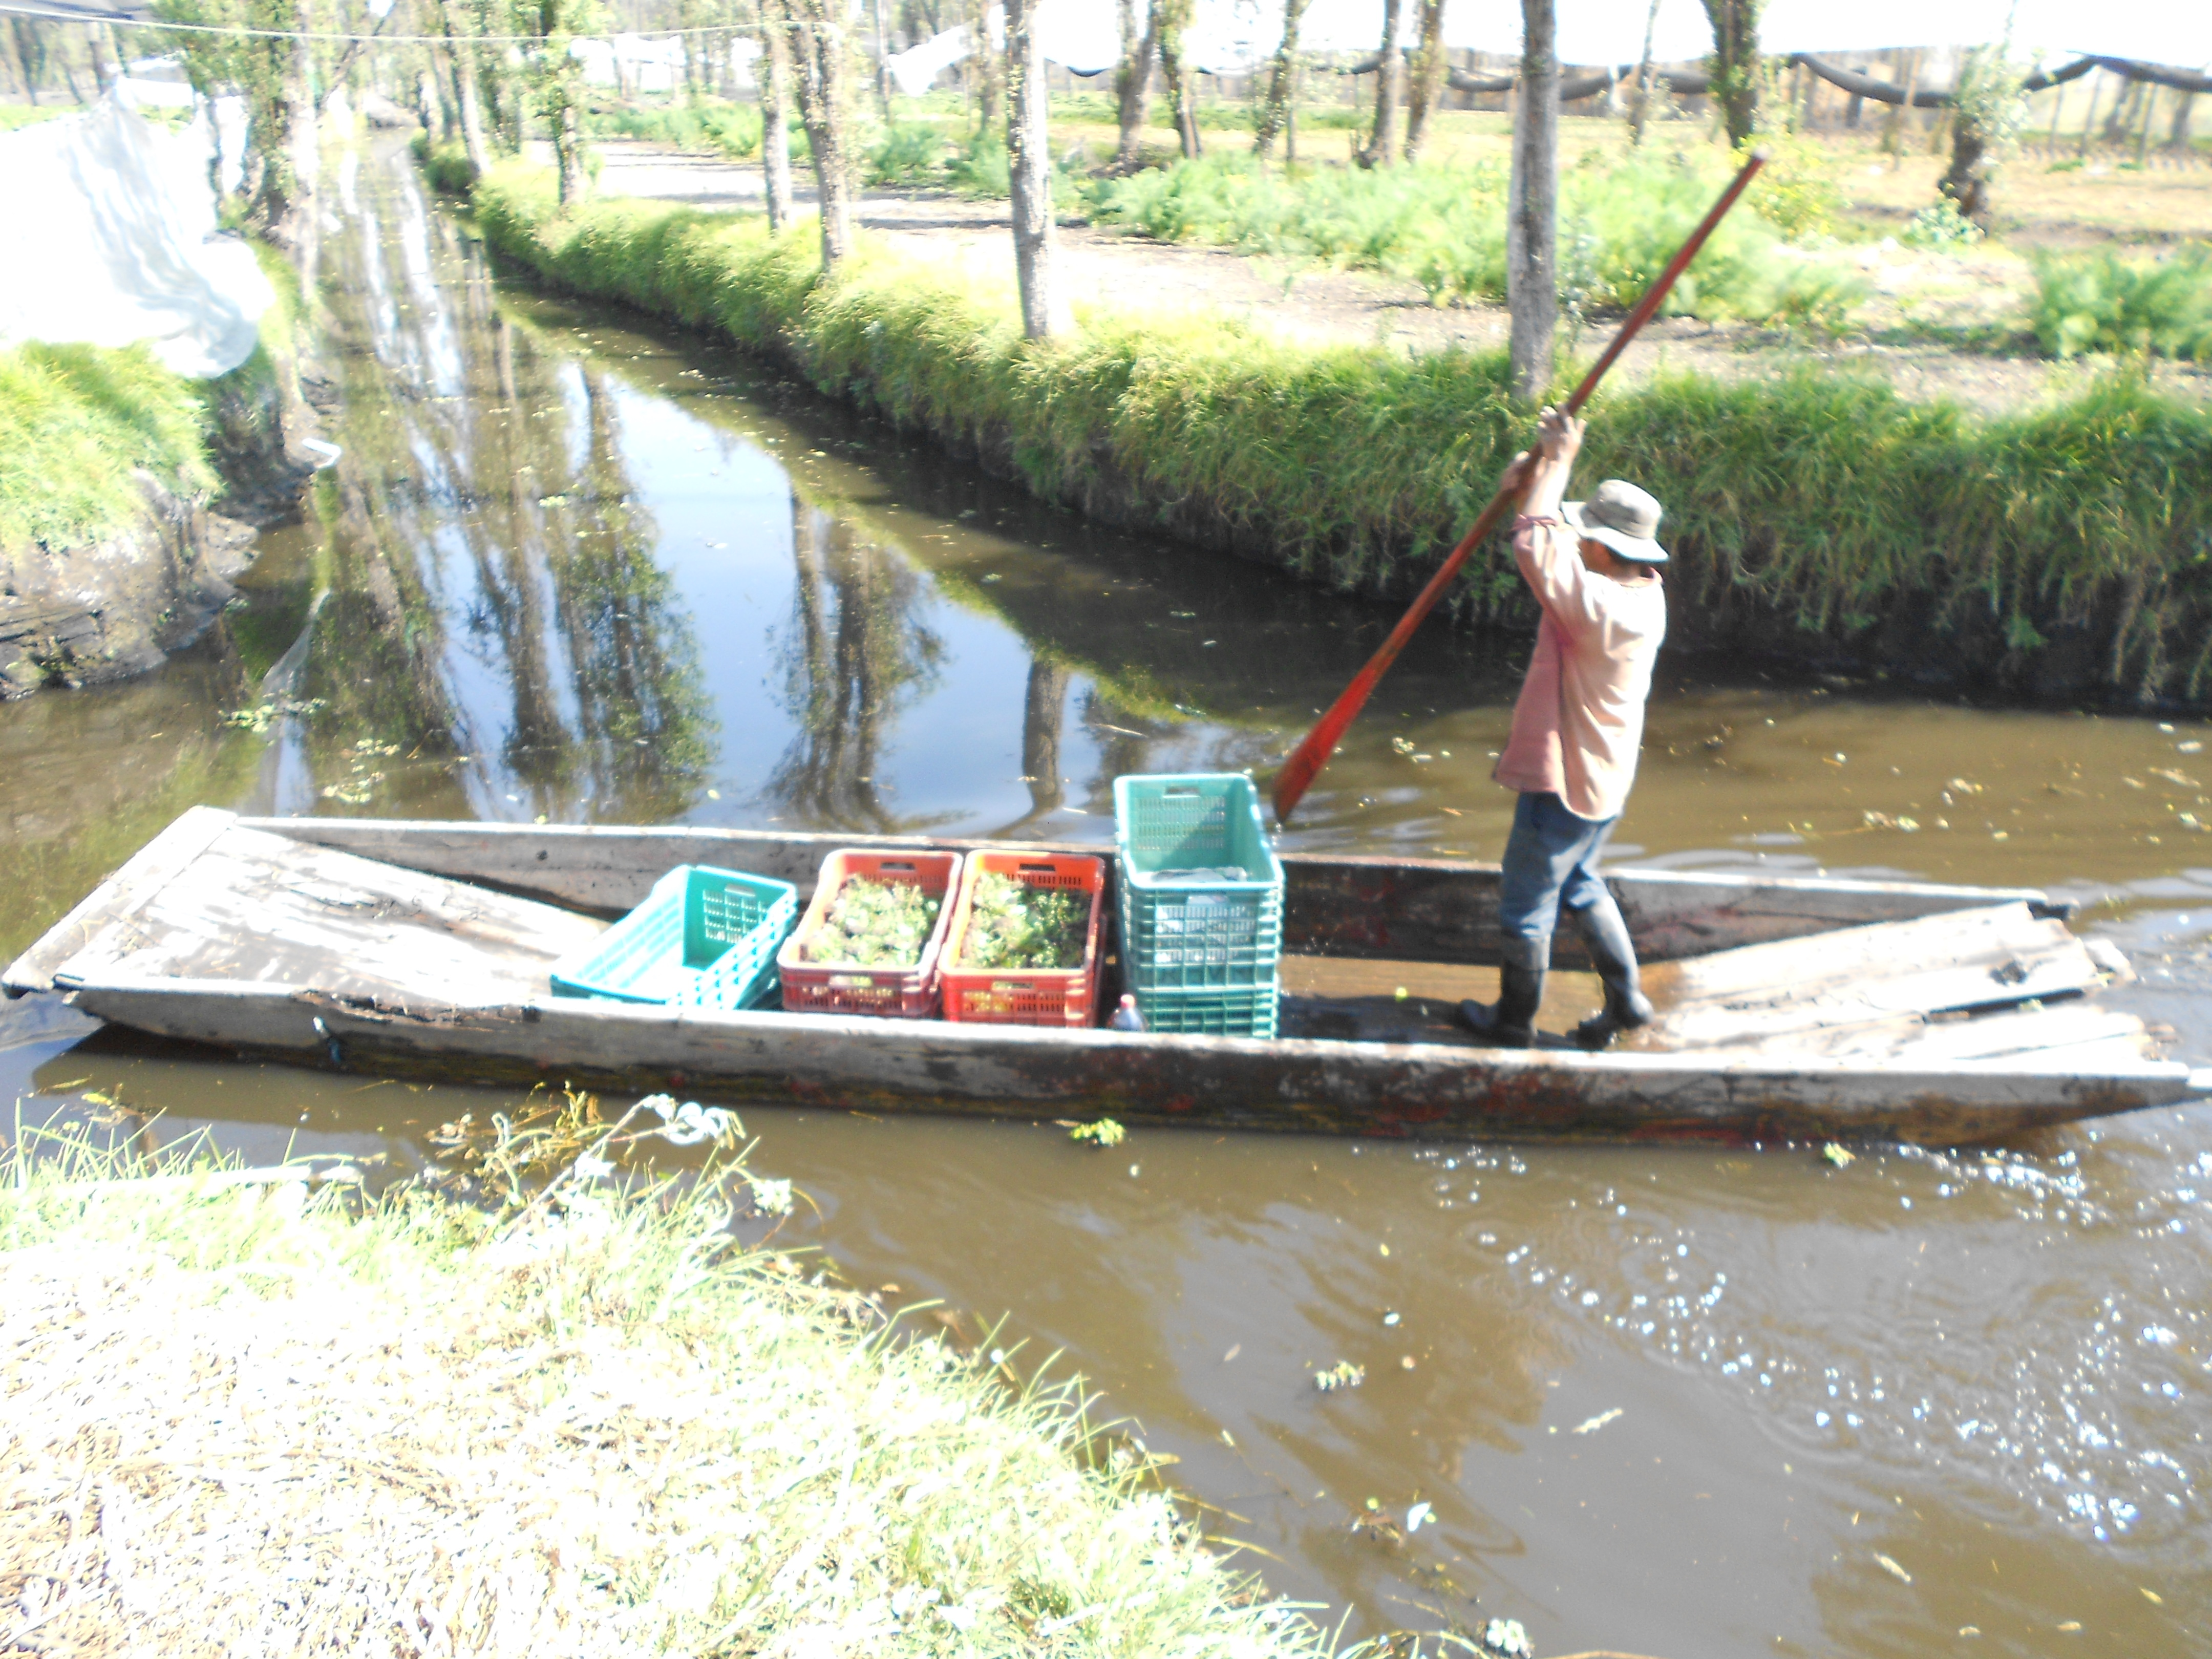 Mexico S Chinampas Wetlands Turned Into Gardens Fight Extinction Inter Press Service